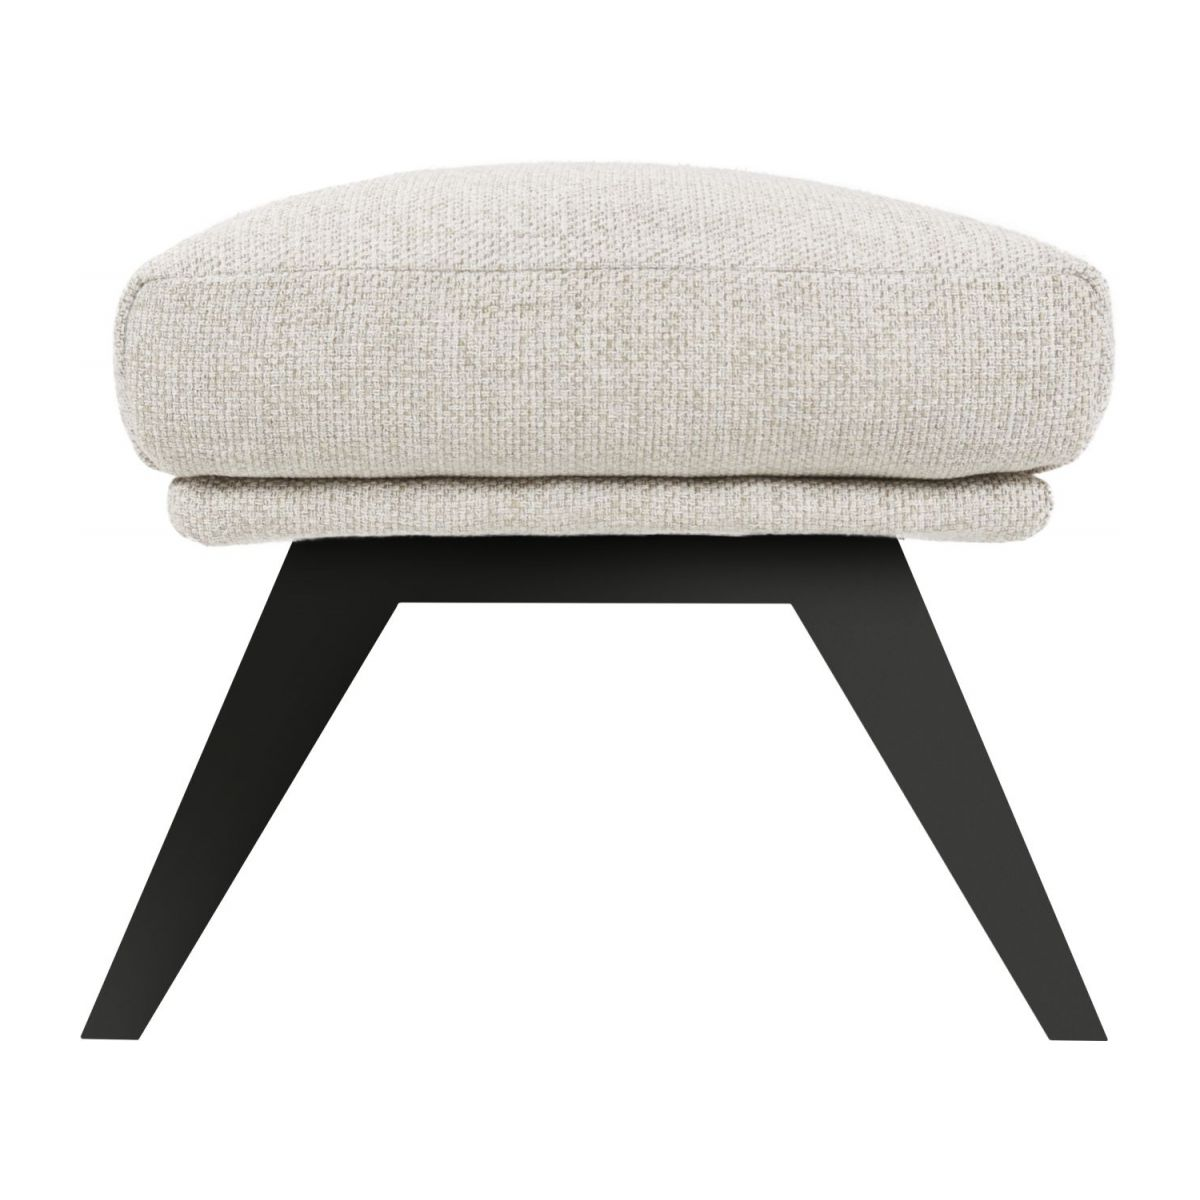 Footstool in Lecce fabric, nature with dark legs n°3